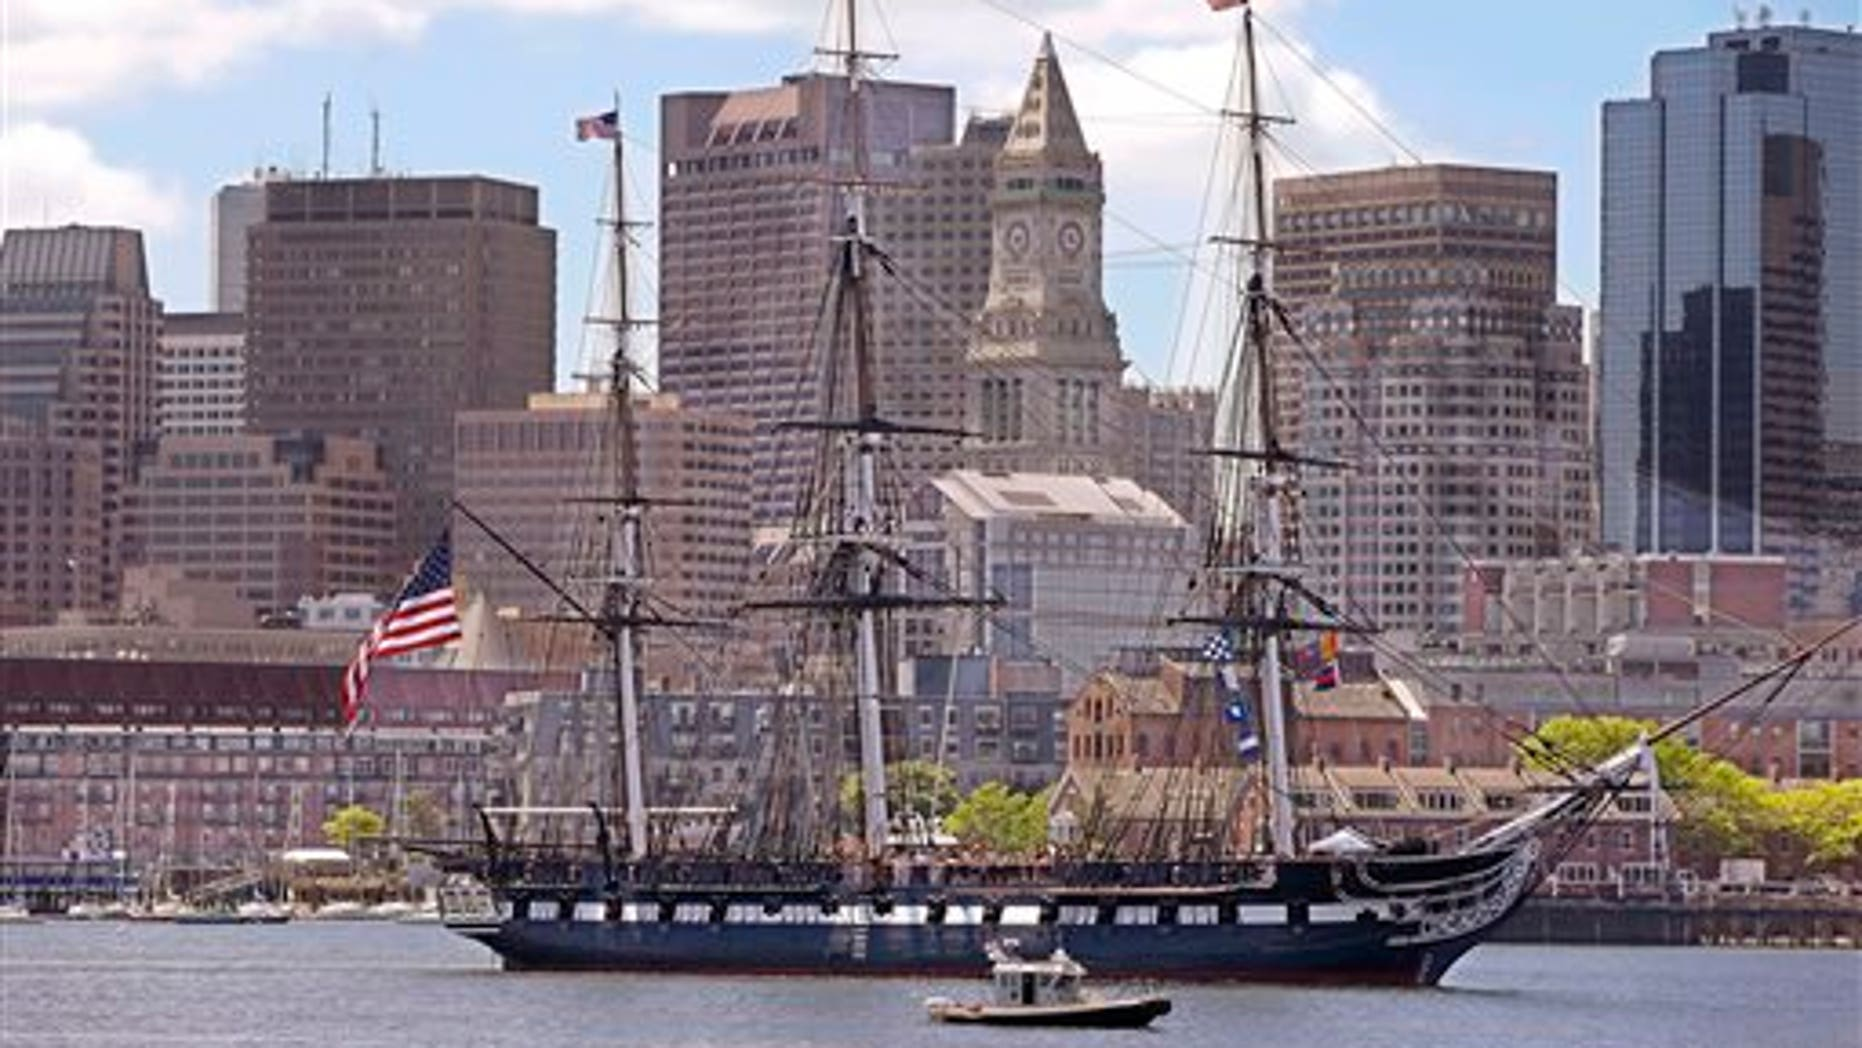 The USS Constitution. (AP Photo/Stephan Savoia)